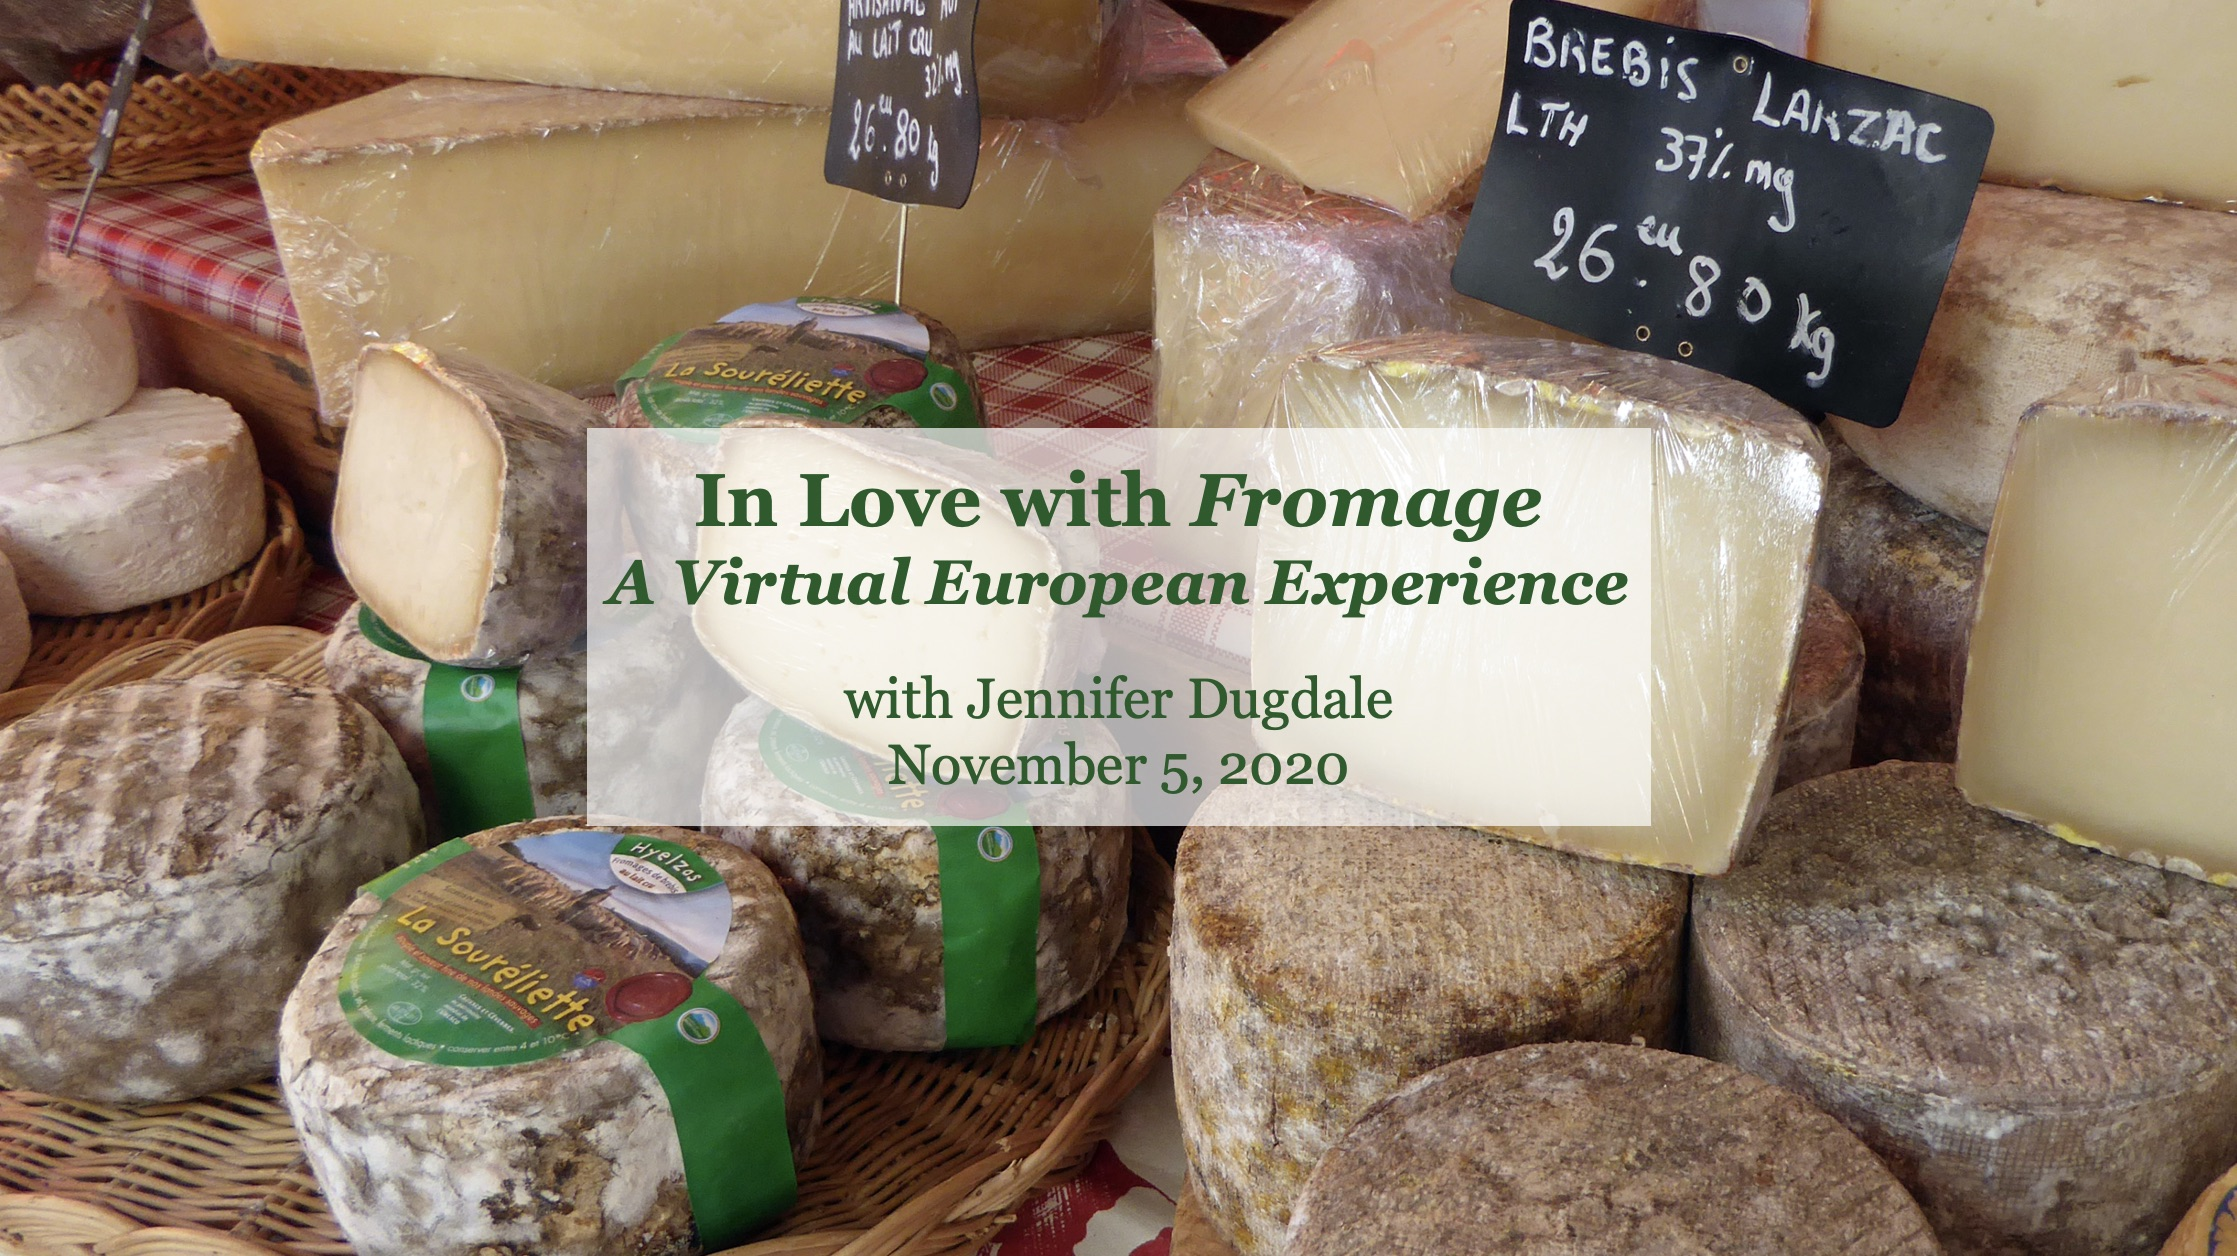 In Love with Fromage